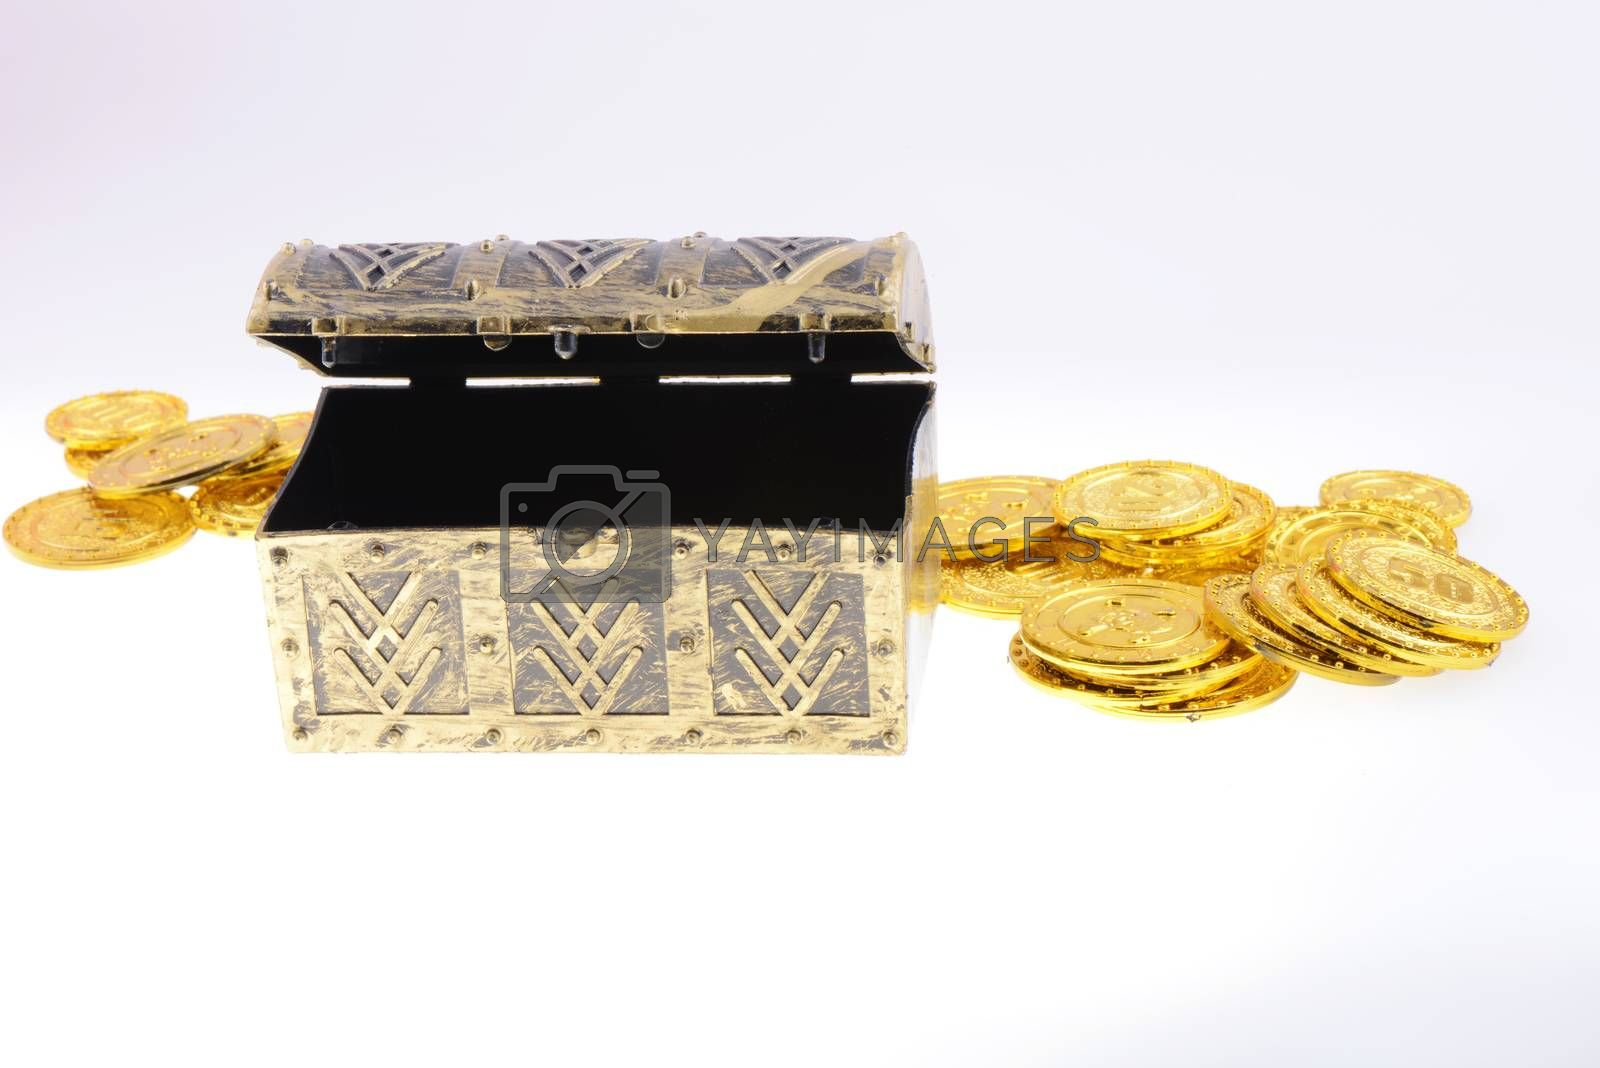 Treasure box with gold coins on a white background